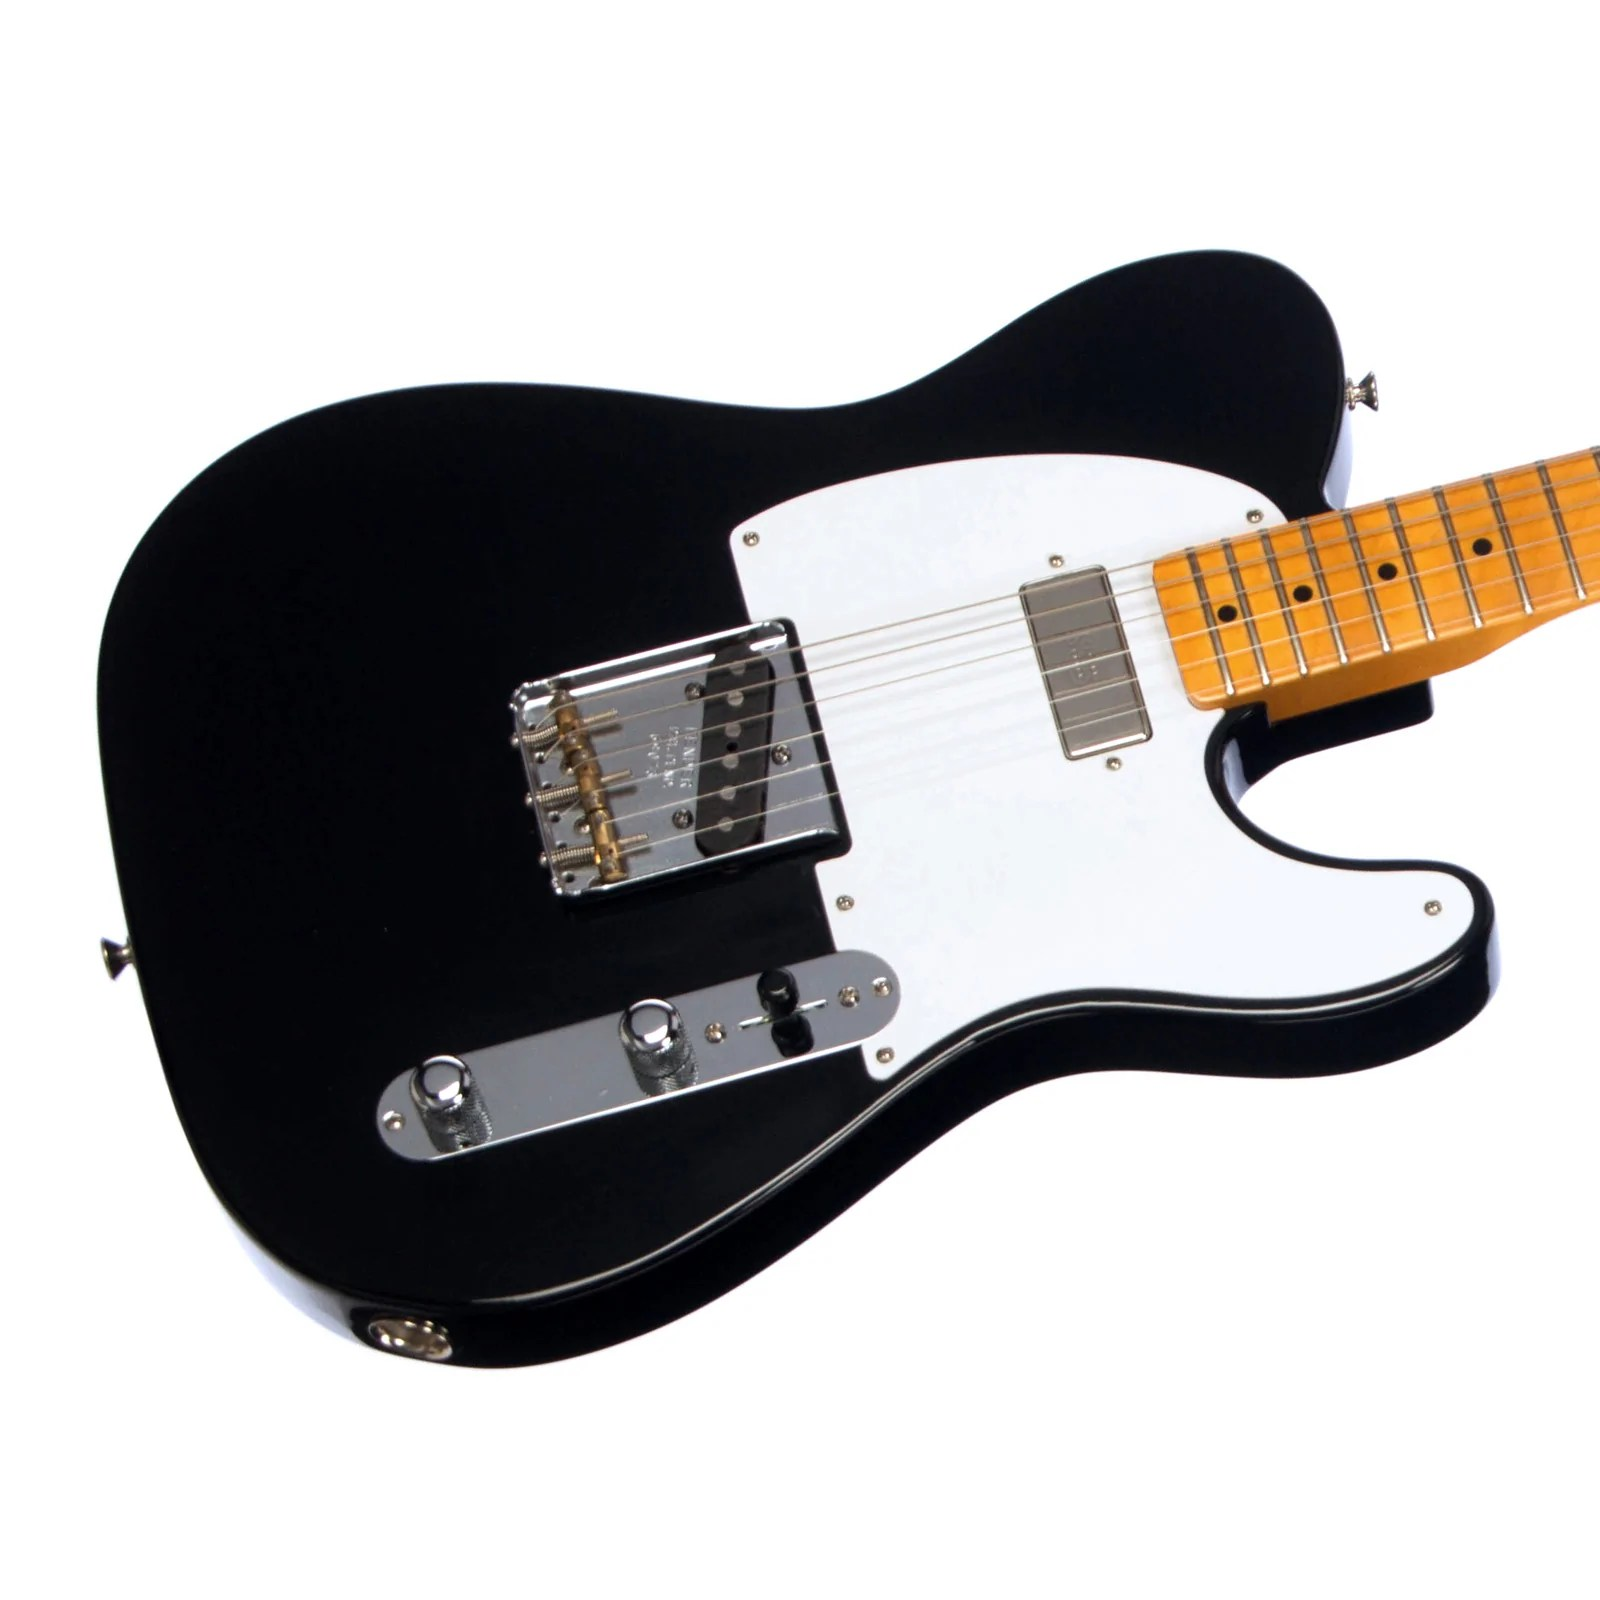 used fender vintage hot rod 52 telecaster black electric guitar made in tap to expand [ 1600 x 1600 Pixel ]